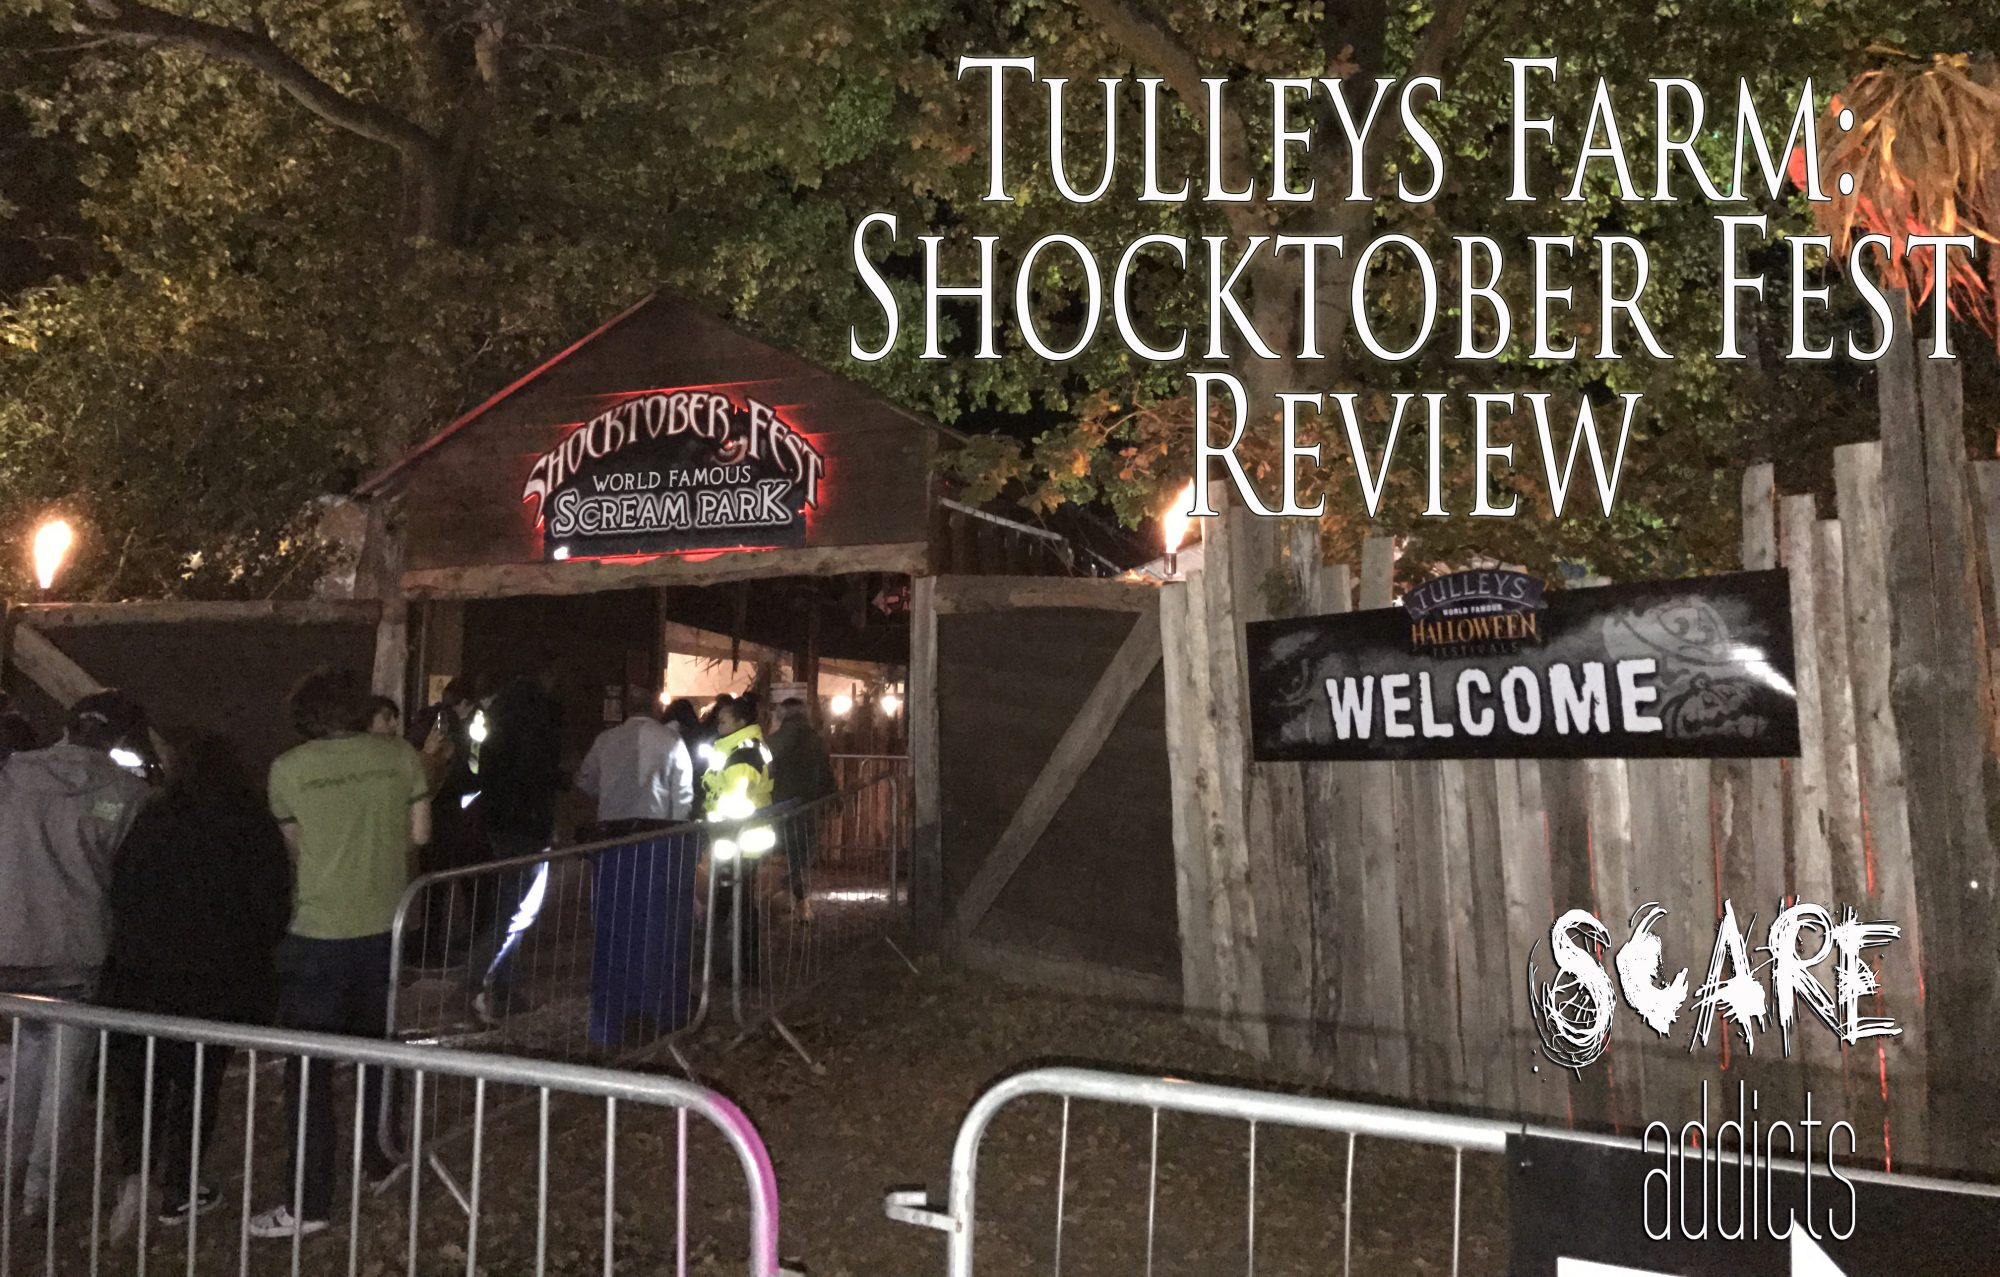 Review Shocktober Fest 2016 Tulleys Farm Scare Addicts